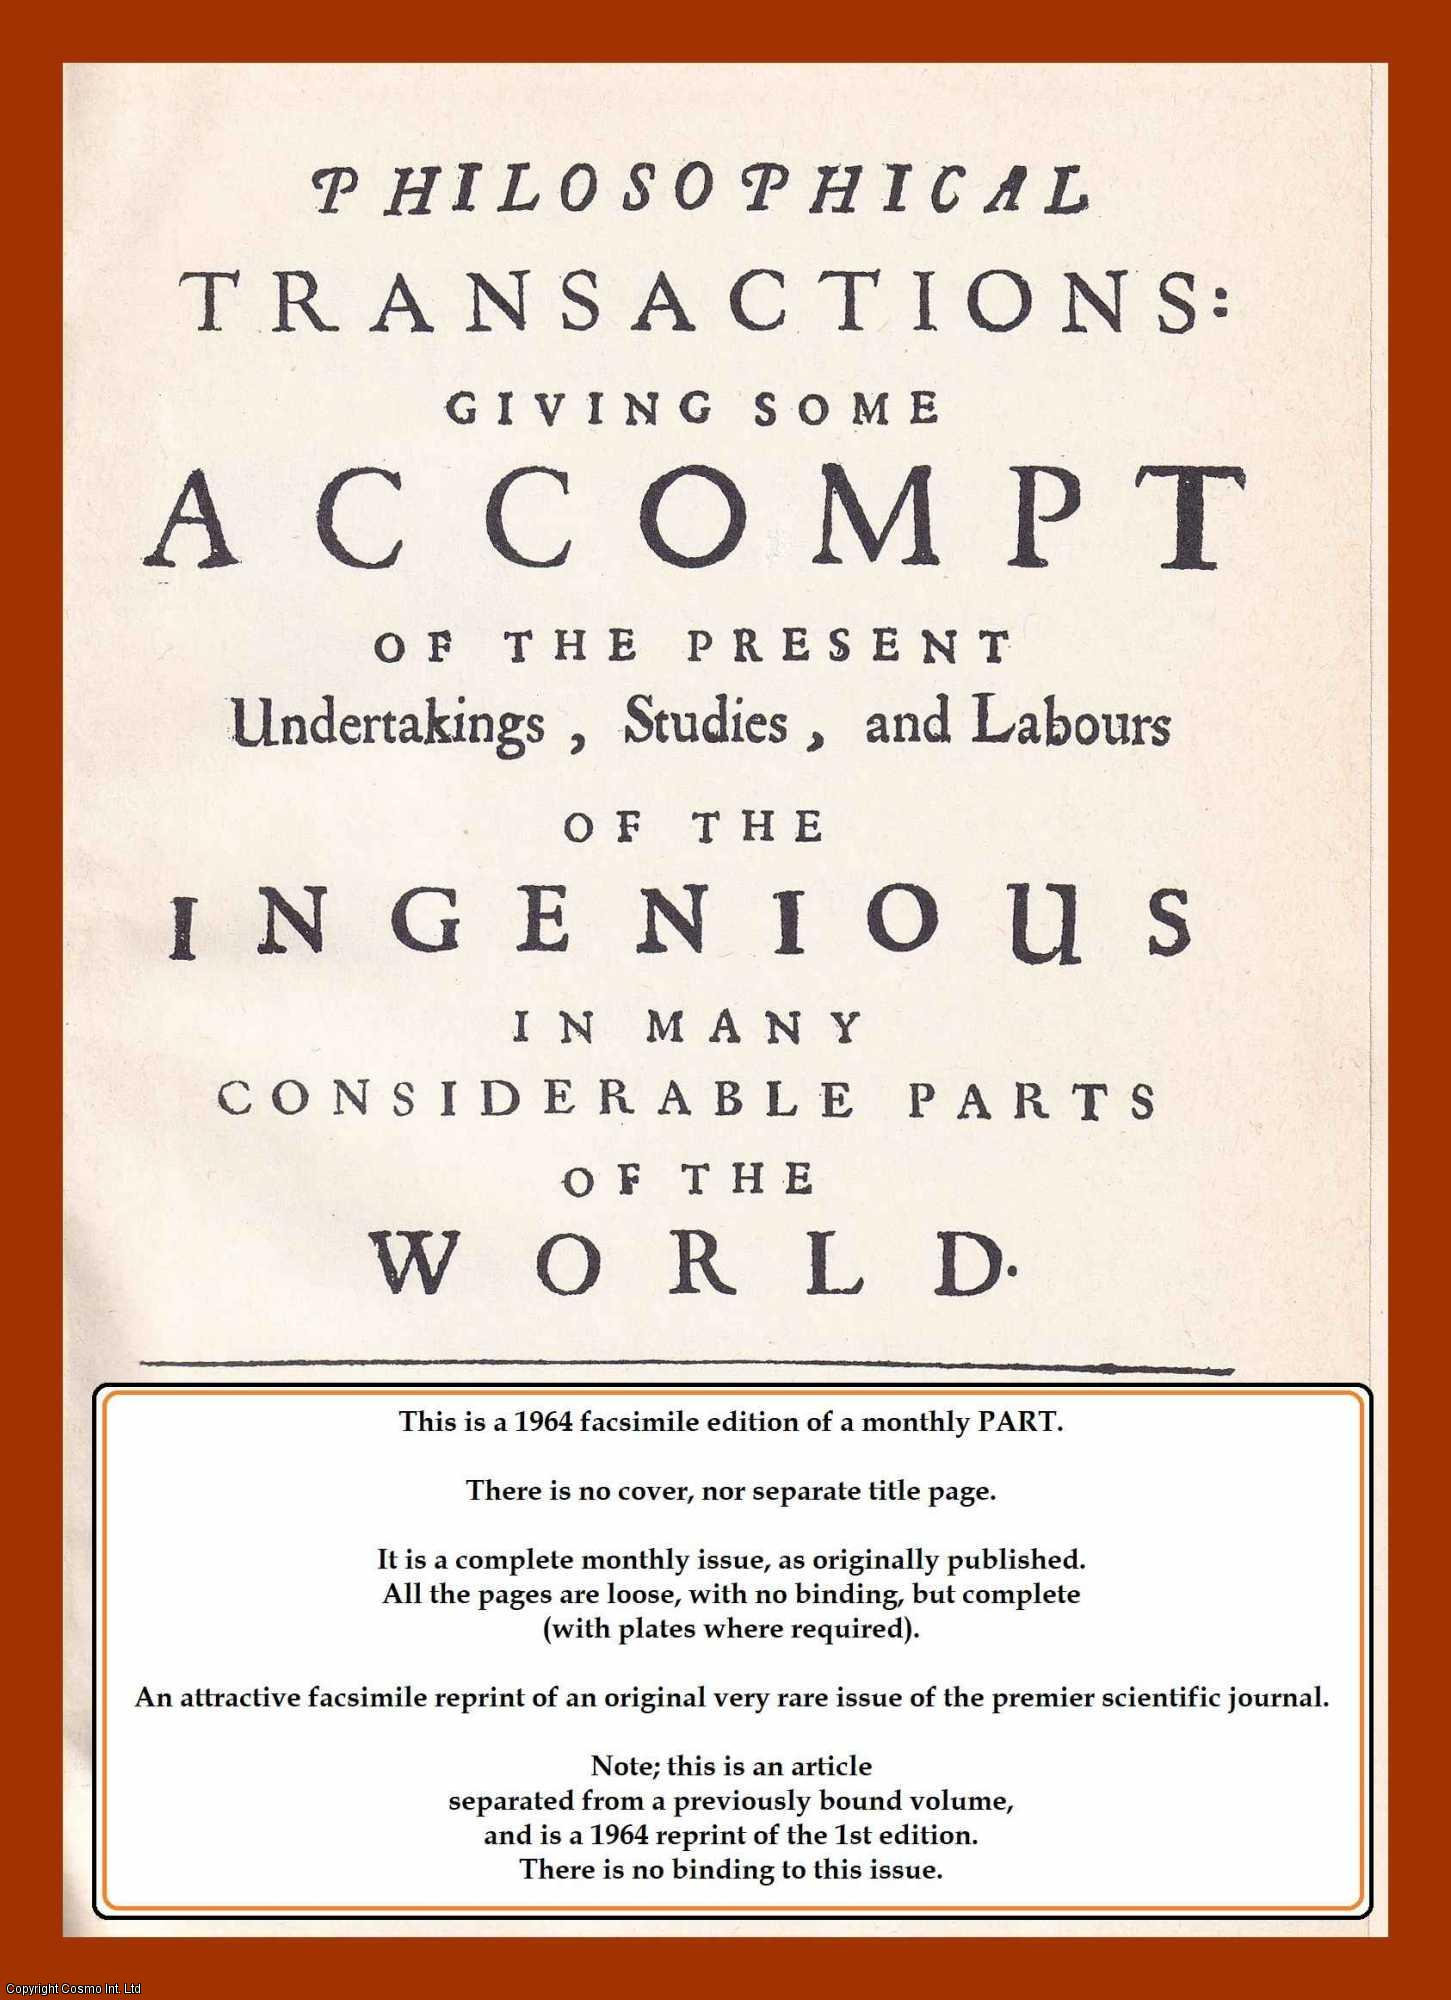 UNSTATED - The Progress of Pilgrim Good Intent. An updated version of Bunyan's allegorical tale. A rare original article from the Anti Jacobin Review, 1800.